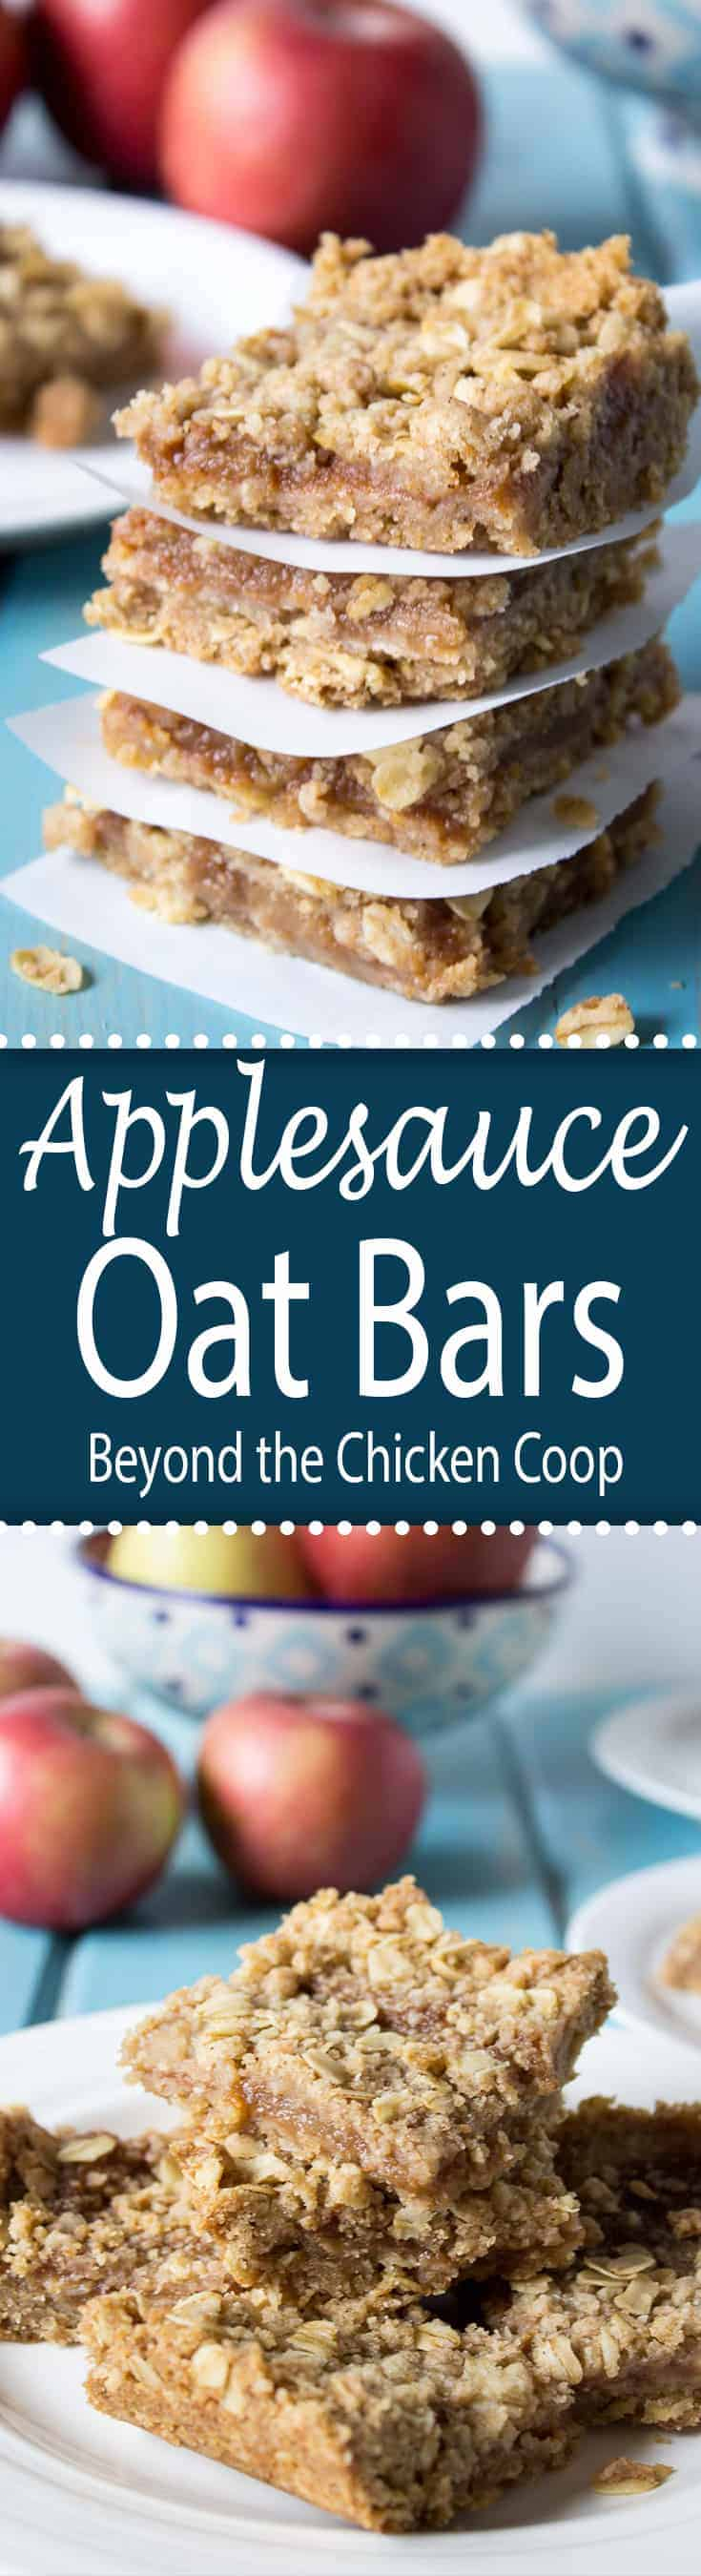 Layers of an oatmeal crumb crust with an applesauce filling make a delicious snack.